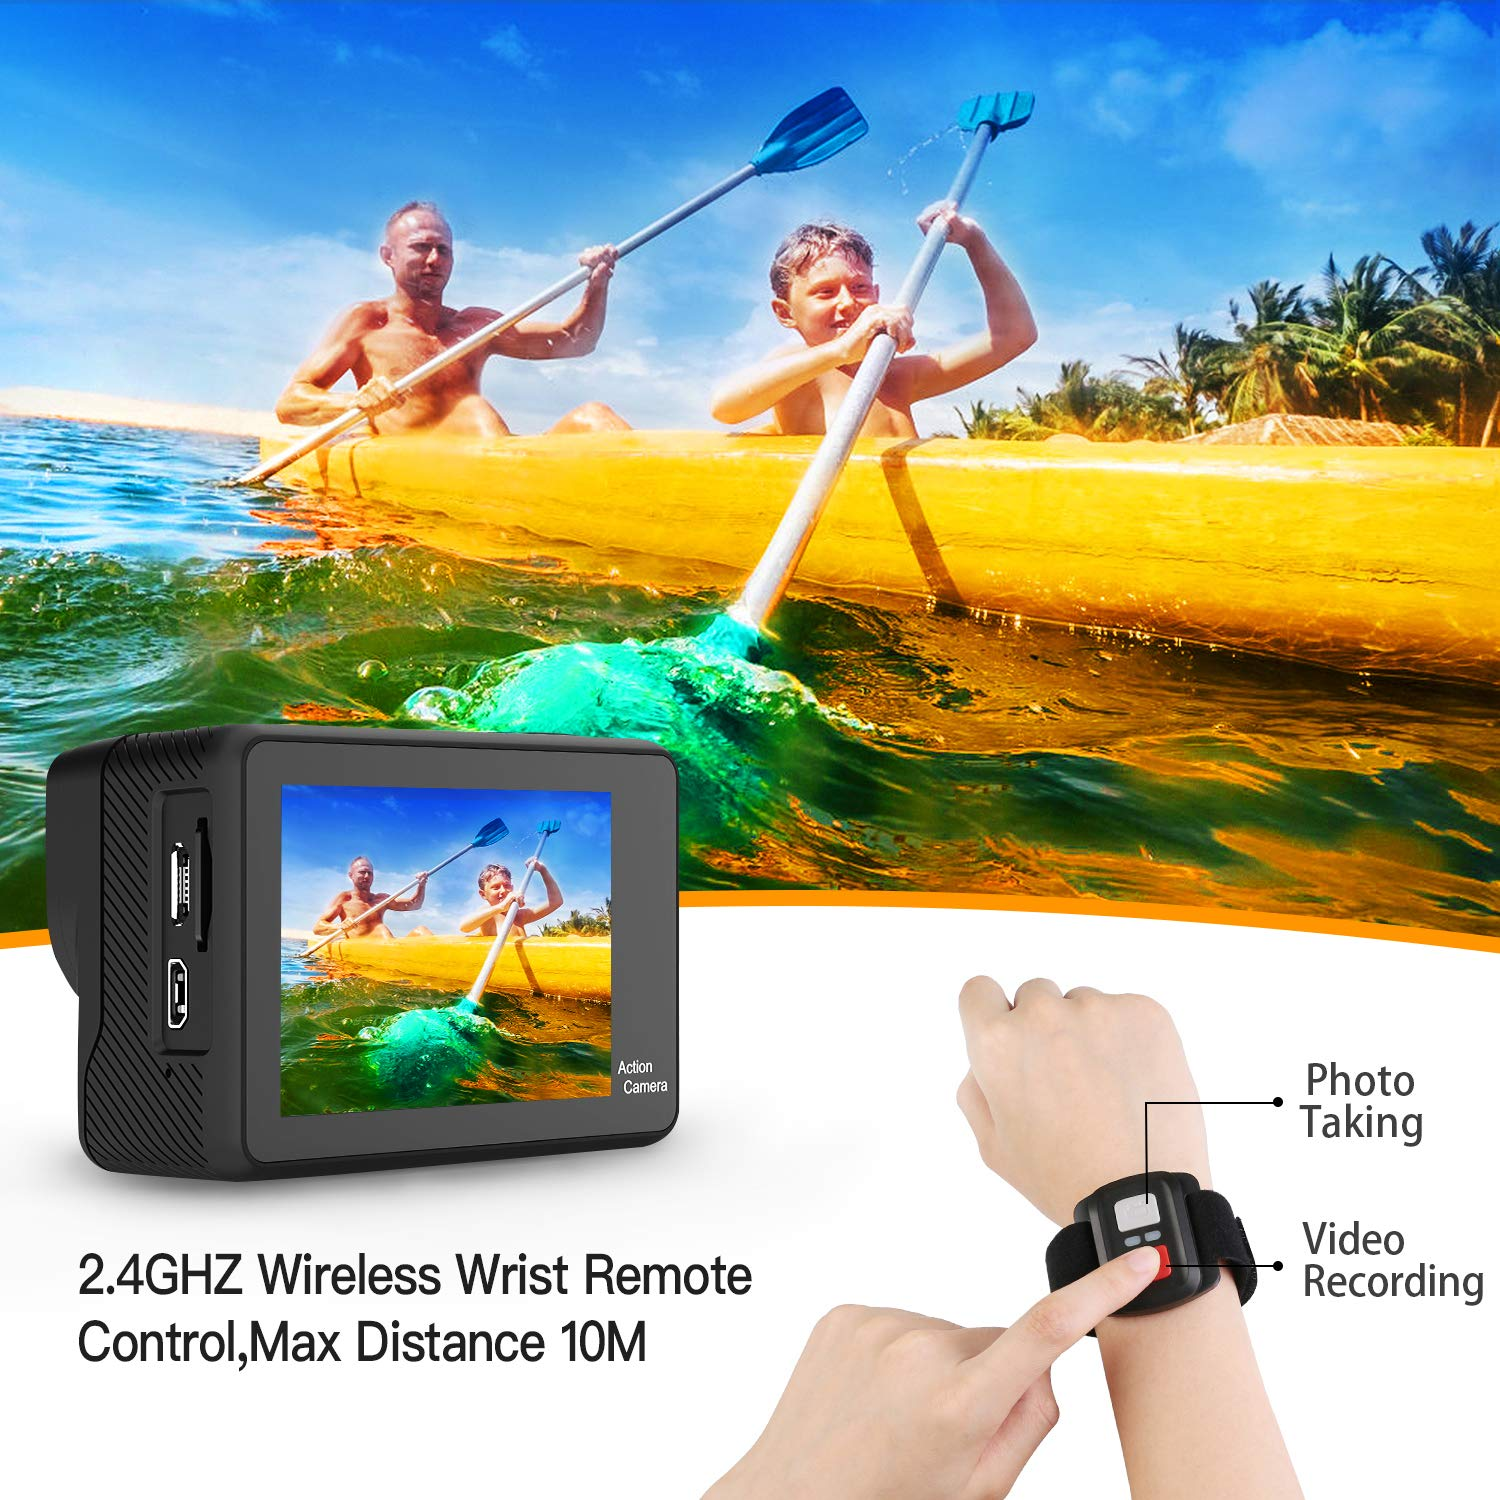 WiMiUS 4K Action Camera 2 Inch Touch Screen 16MP WiFi Sports Camera 30M Underwater Waterproof Camcorder 170 Degree Wide Angle Lens with 2 Rechargeable 1050mAh Batteries and Mounting Accessories by WiMiUS (Image #5)